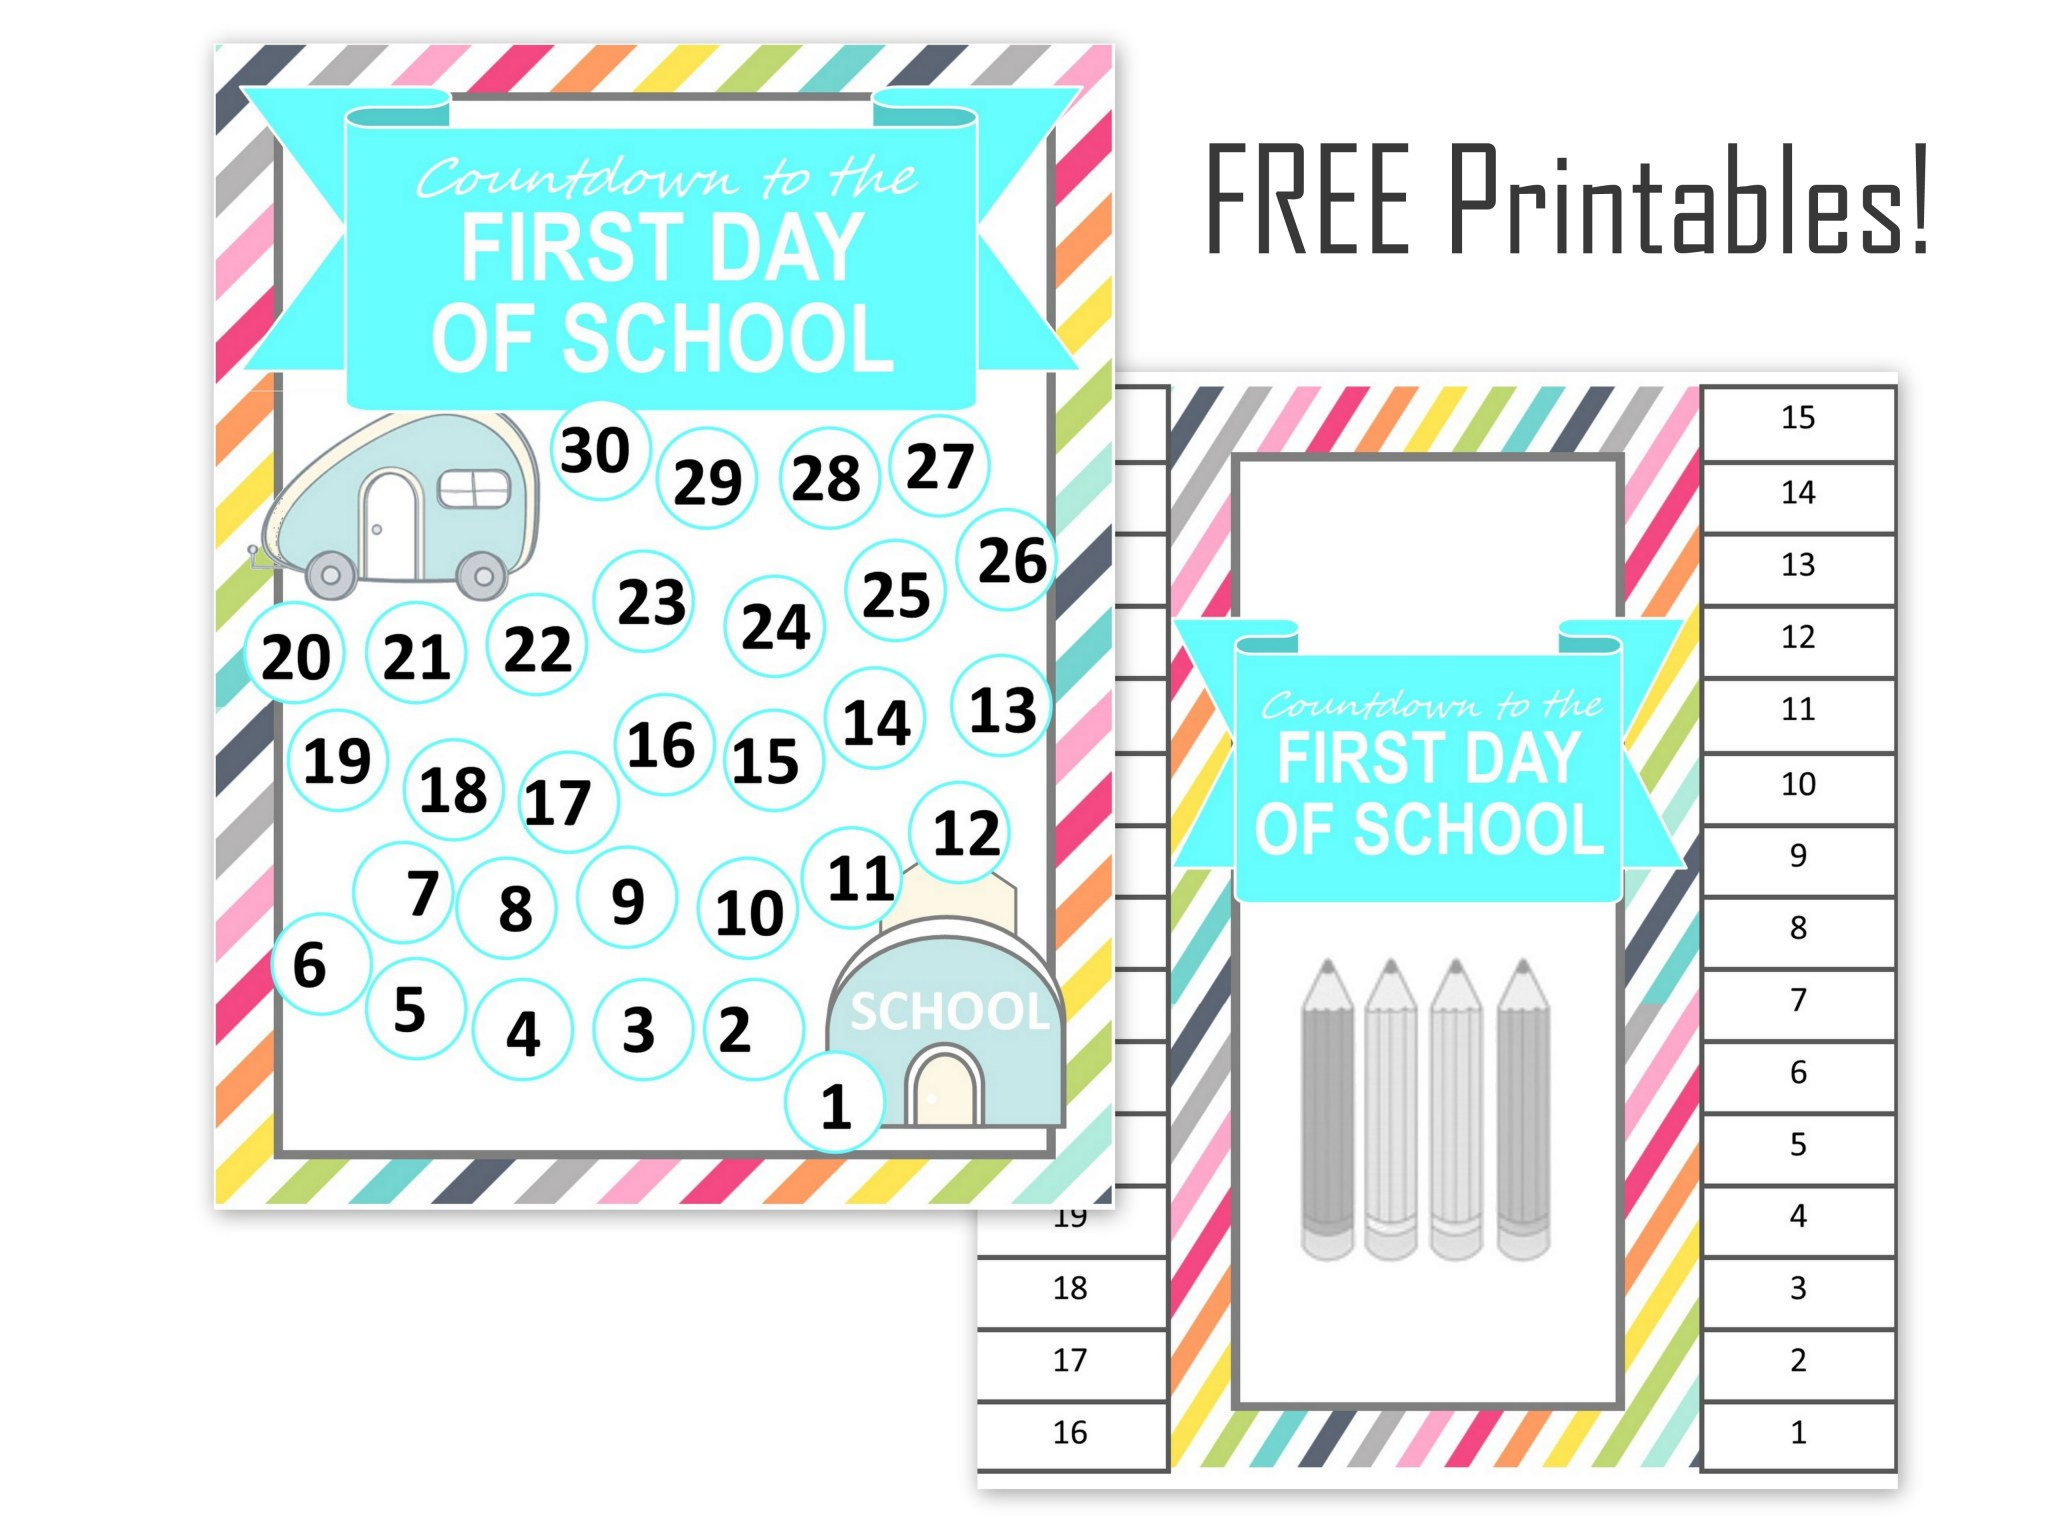 Back to School Countdown Printable and #Creativebuzz 3